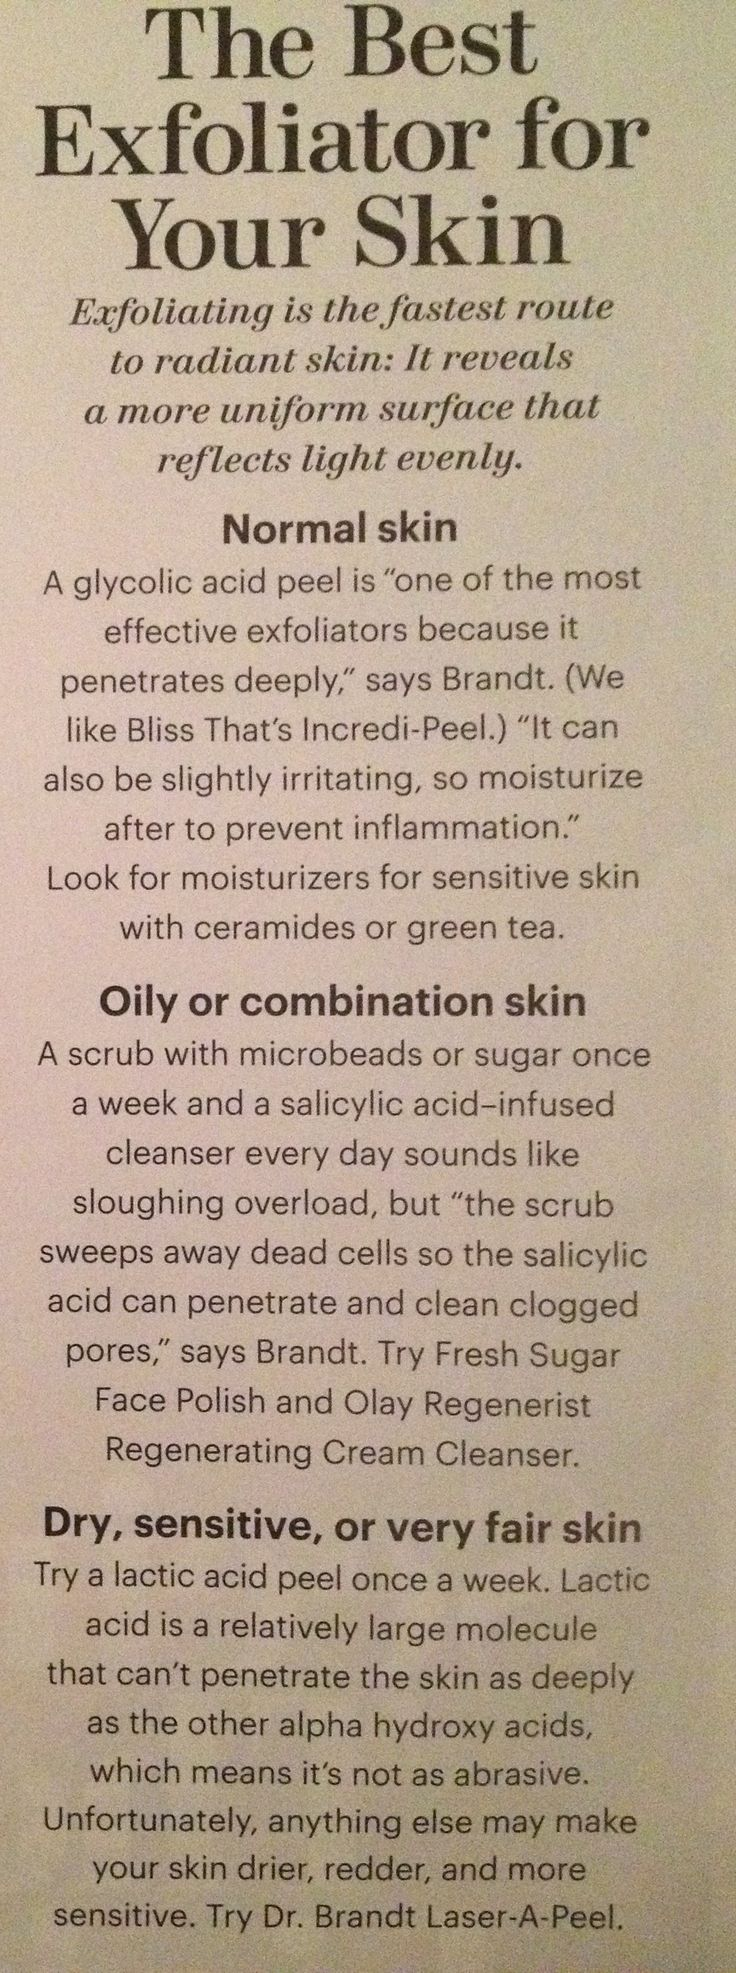 best exfoliators - lactic acid peel weekly